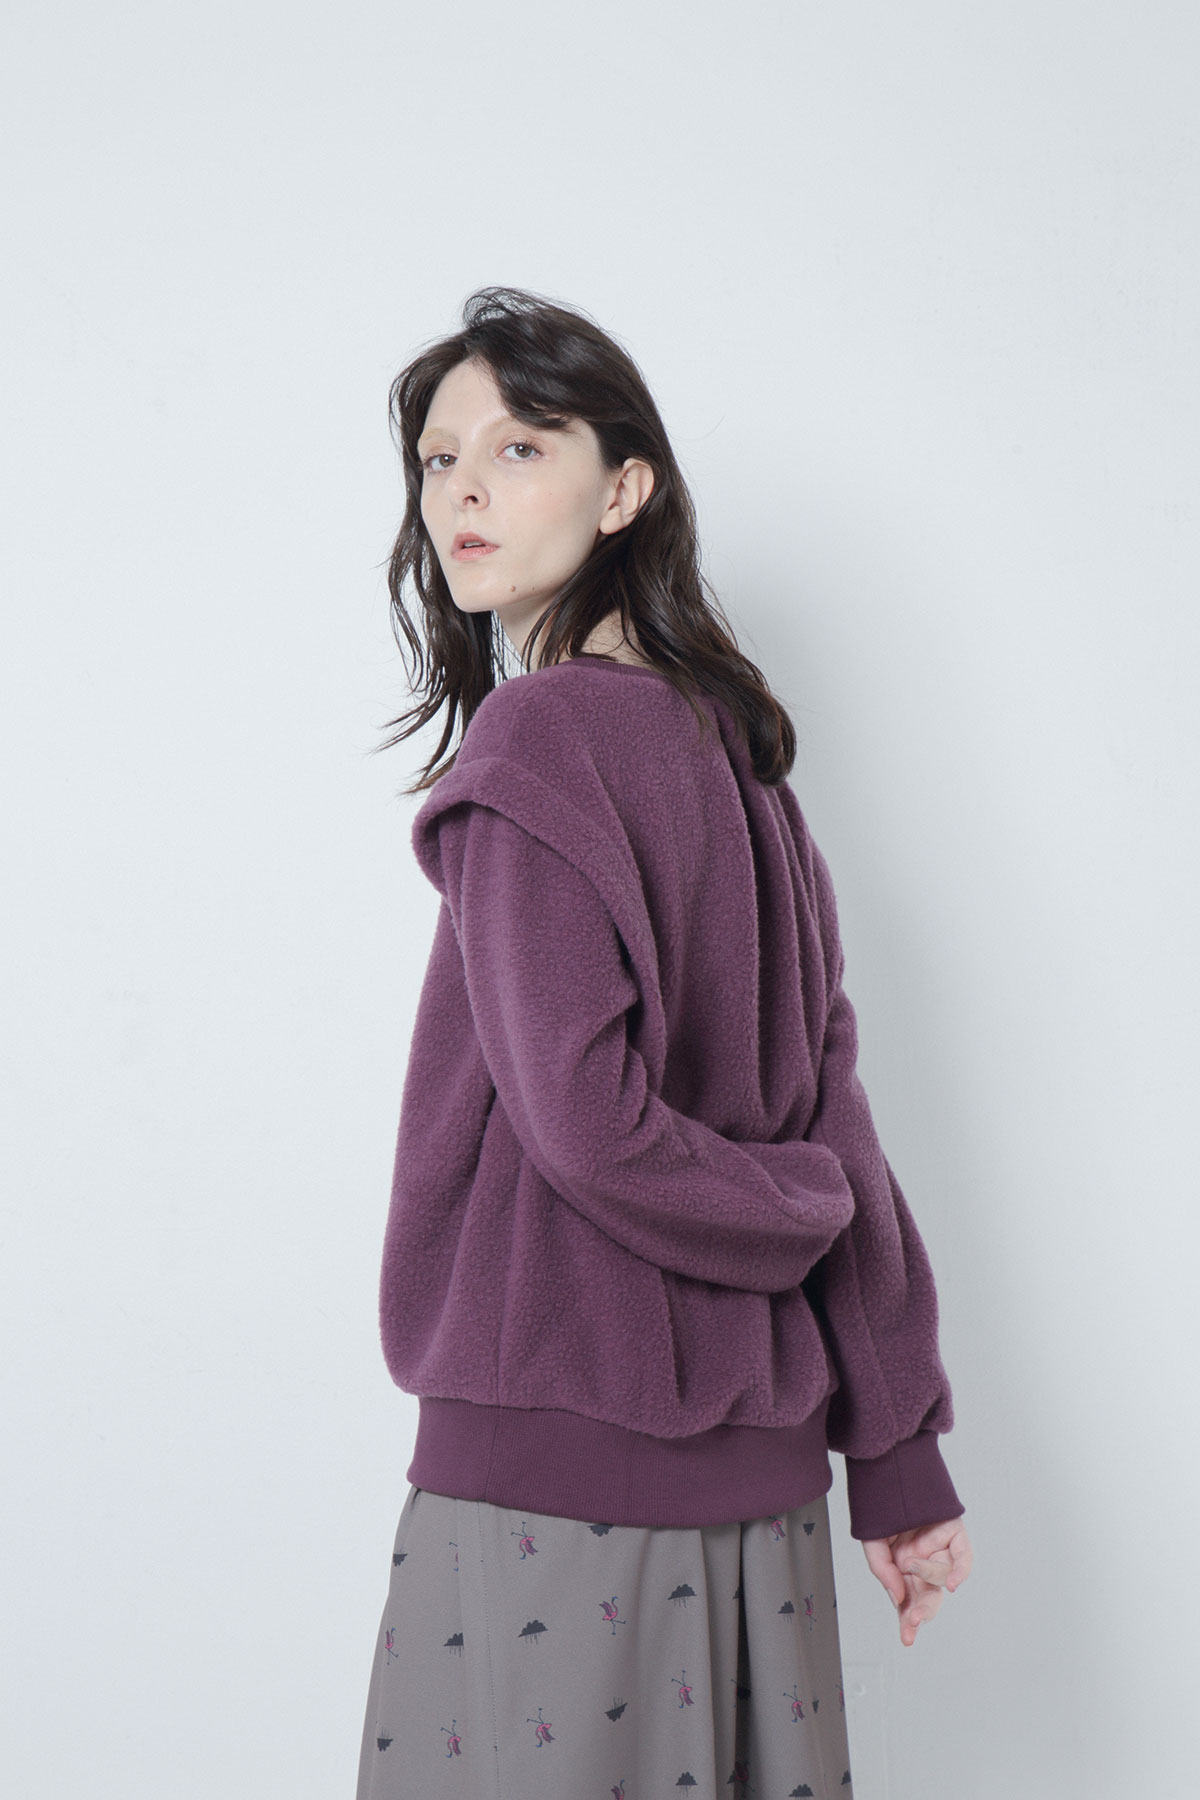 BO205705-purple Antique Blanket Pile Dirndl PullOver -PURPLE-【BO205705】Del. Oct.